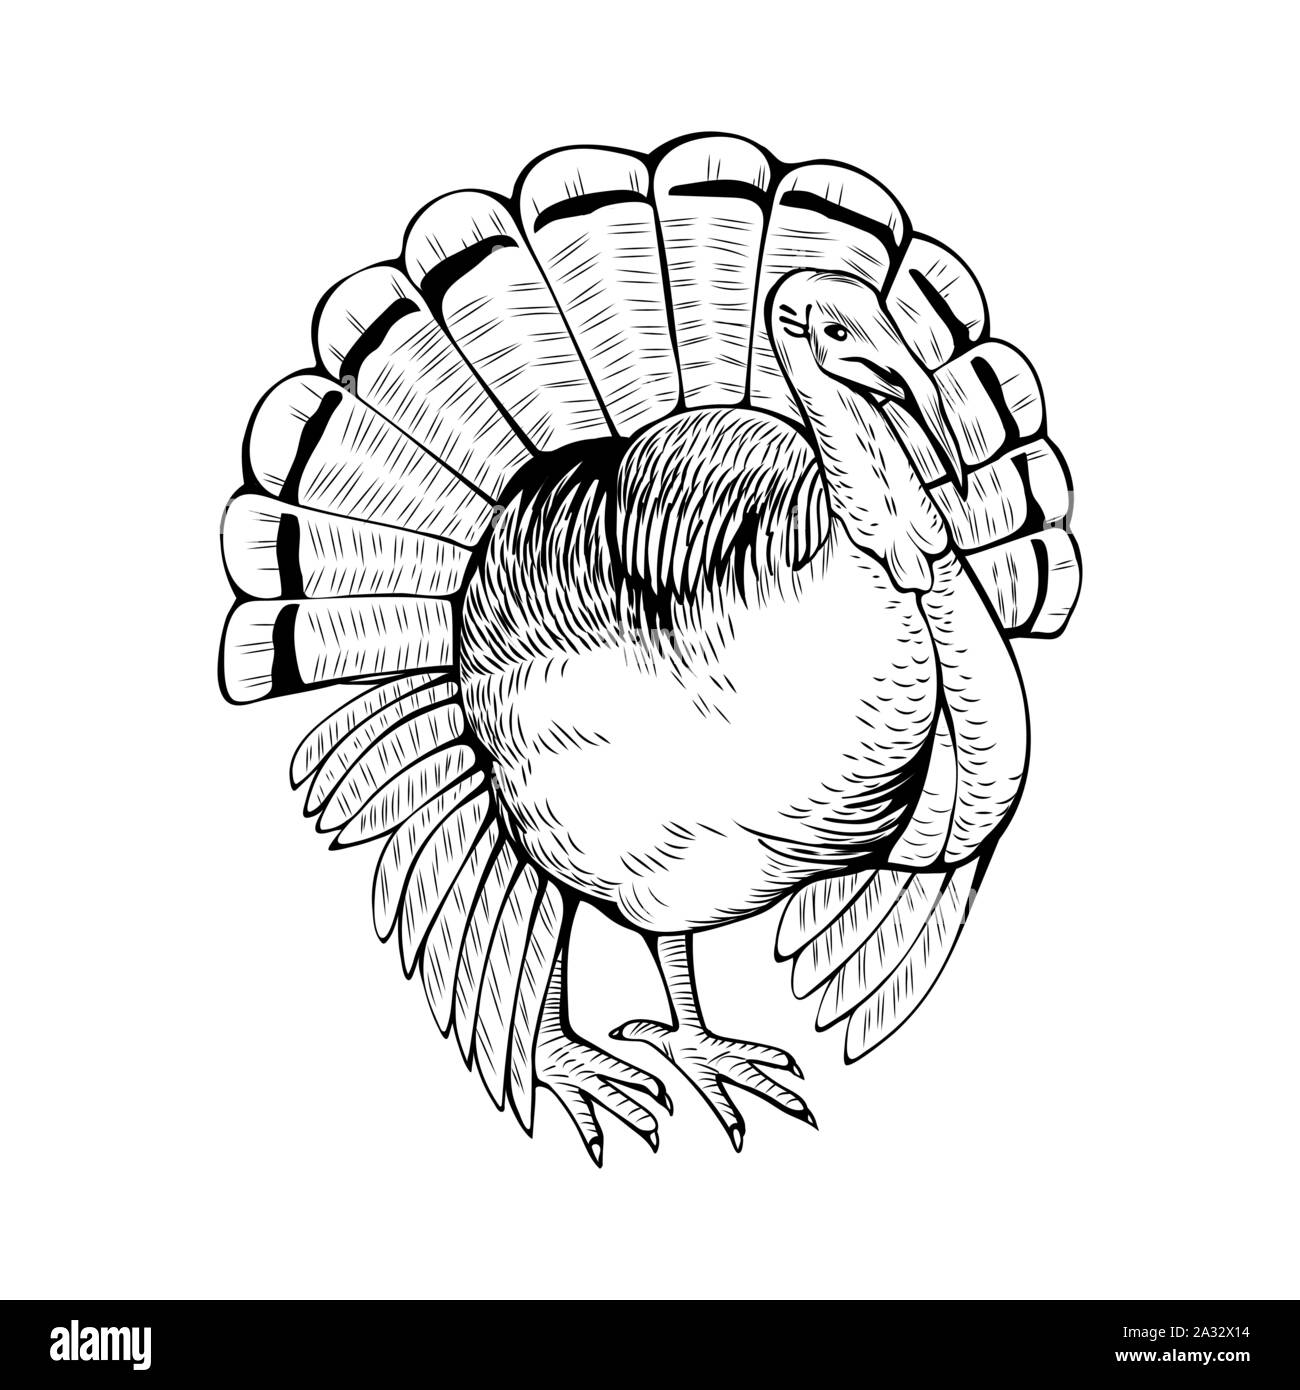 Turkey hand drawn vector illustration. Poultry farm animal. Gobbler, domestic bird, fowl ink pen sketch drawing. Rural wildlife, farming monochrome outline symbol isolated on white background Stock Vector